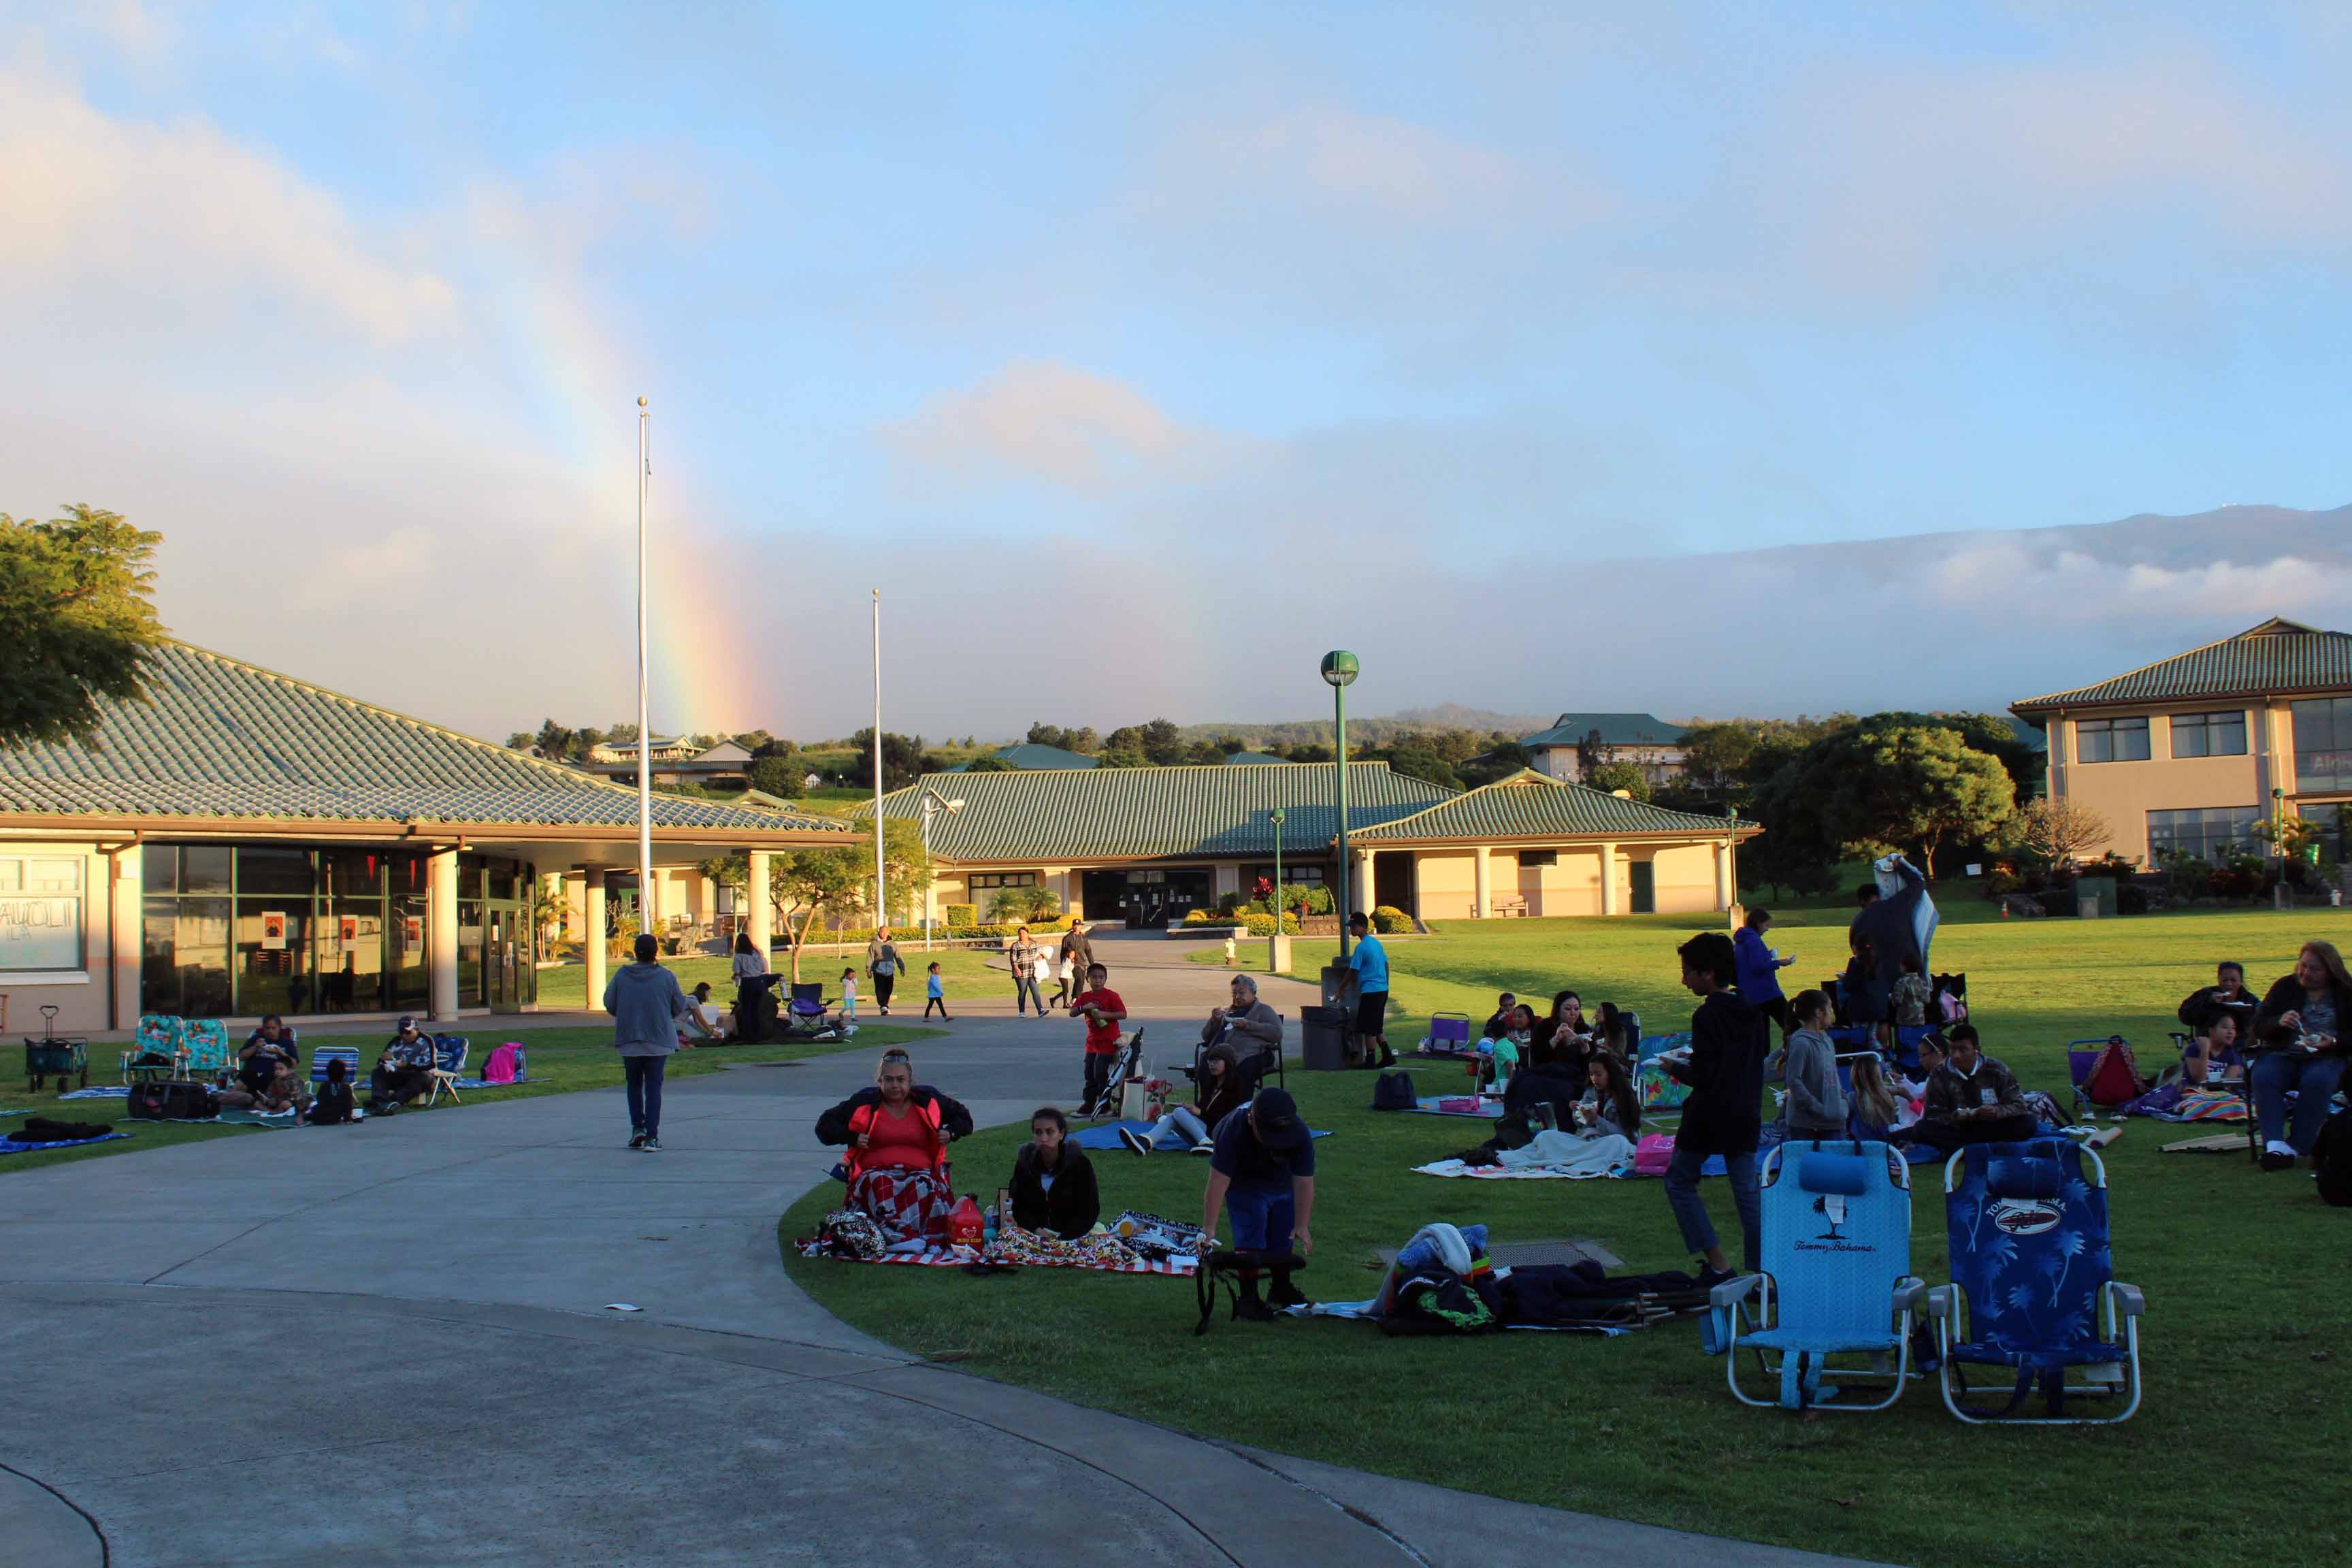 Families and friends lay out their blankets and chairs for the all-school movie night hosted by the PTSO. The event took place outside Keʻeaumokupāpaʻiaheahe on Saturday, Jan. 28.